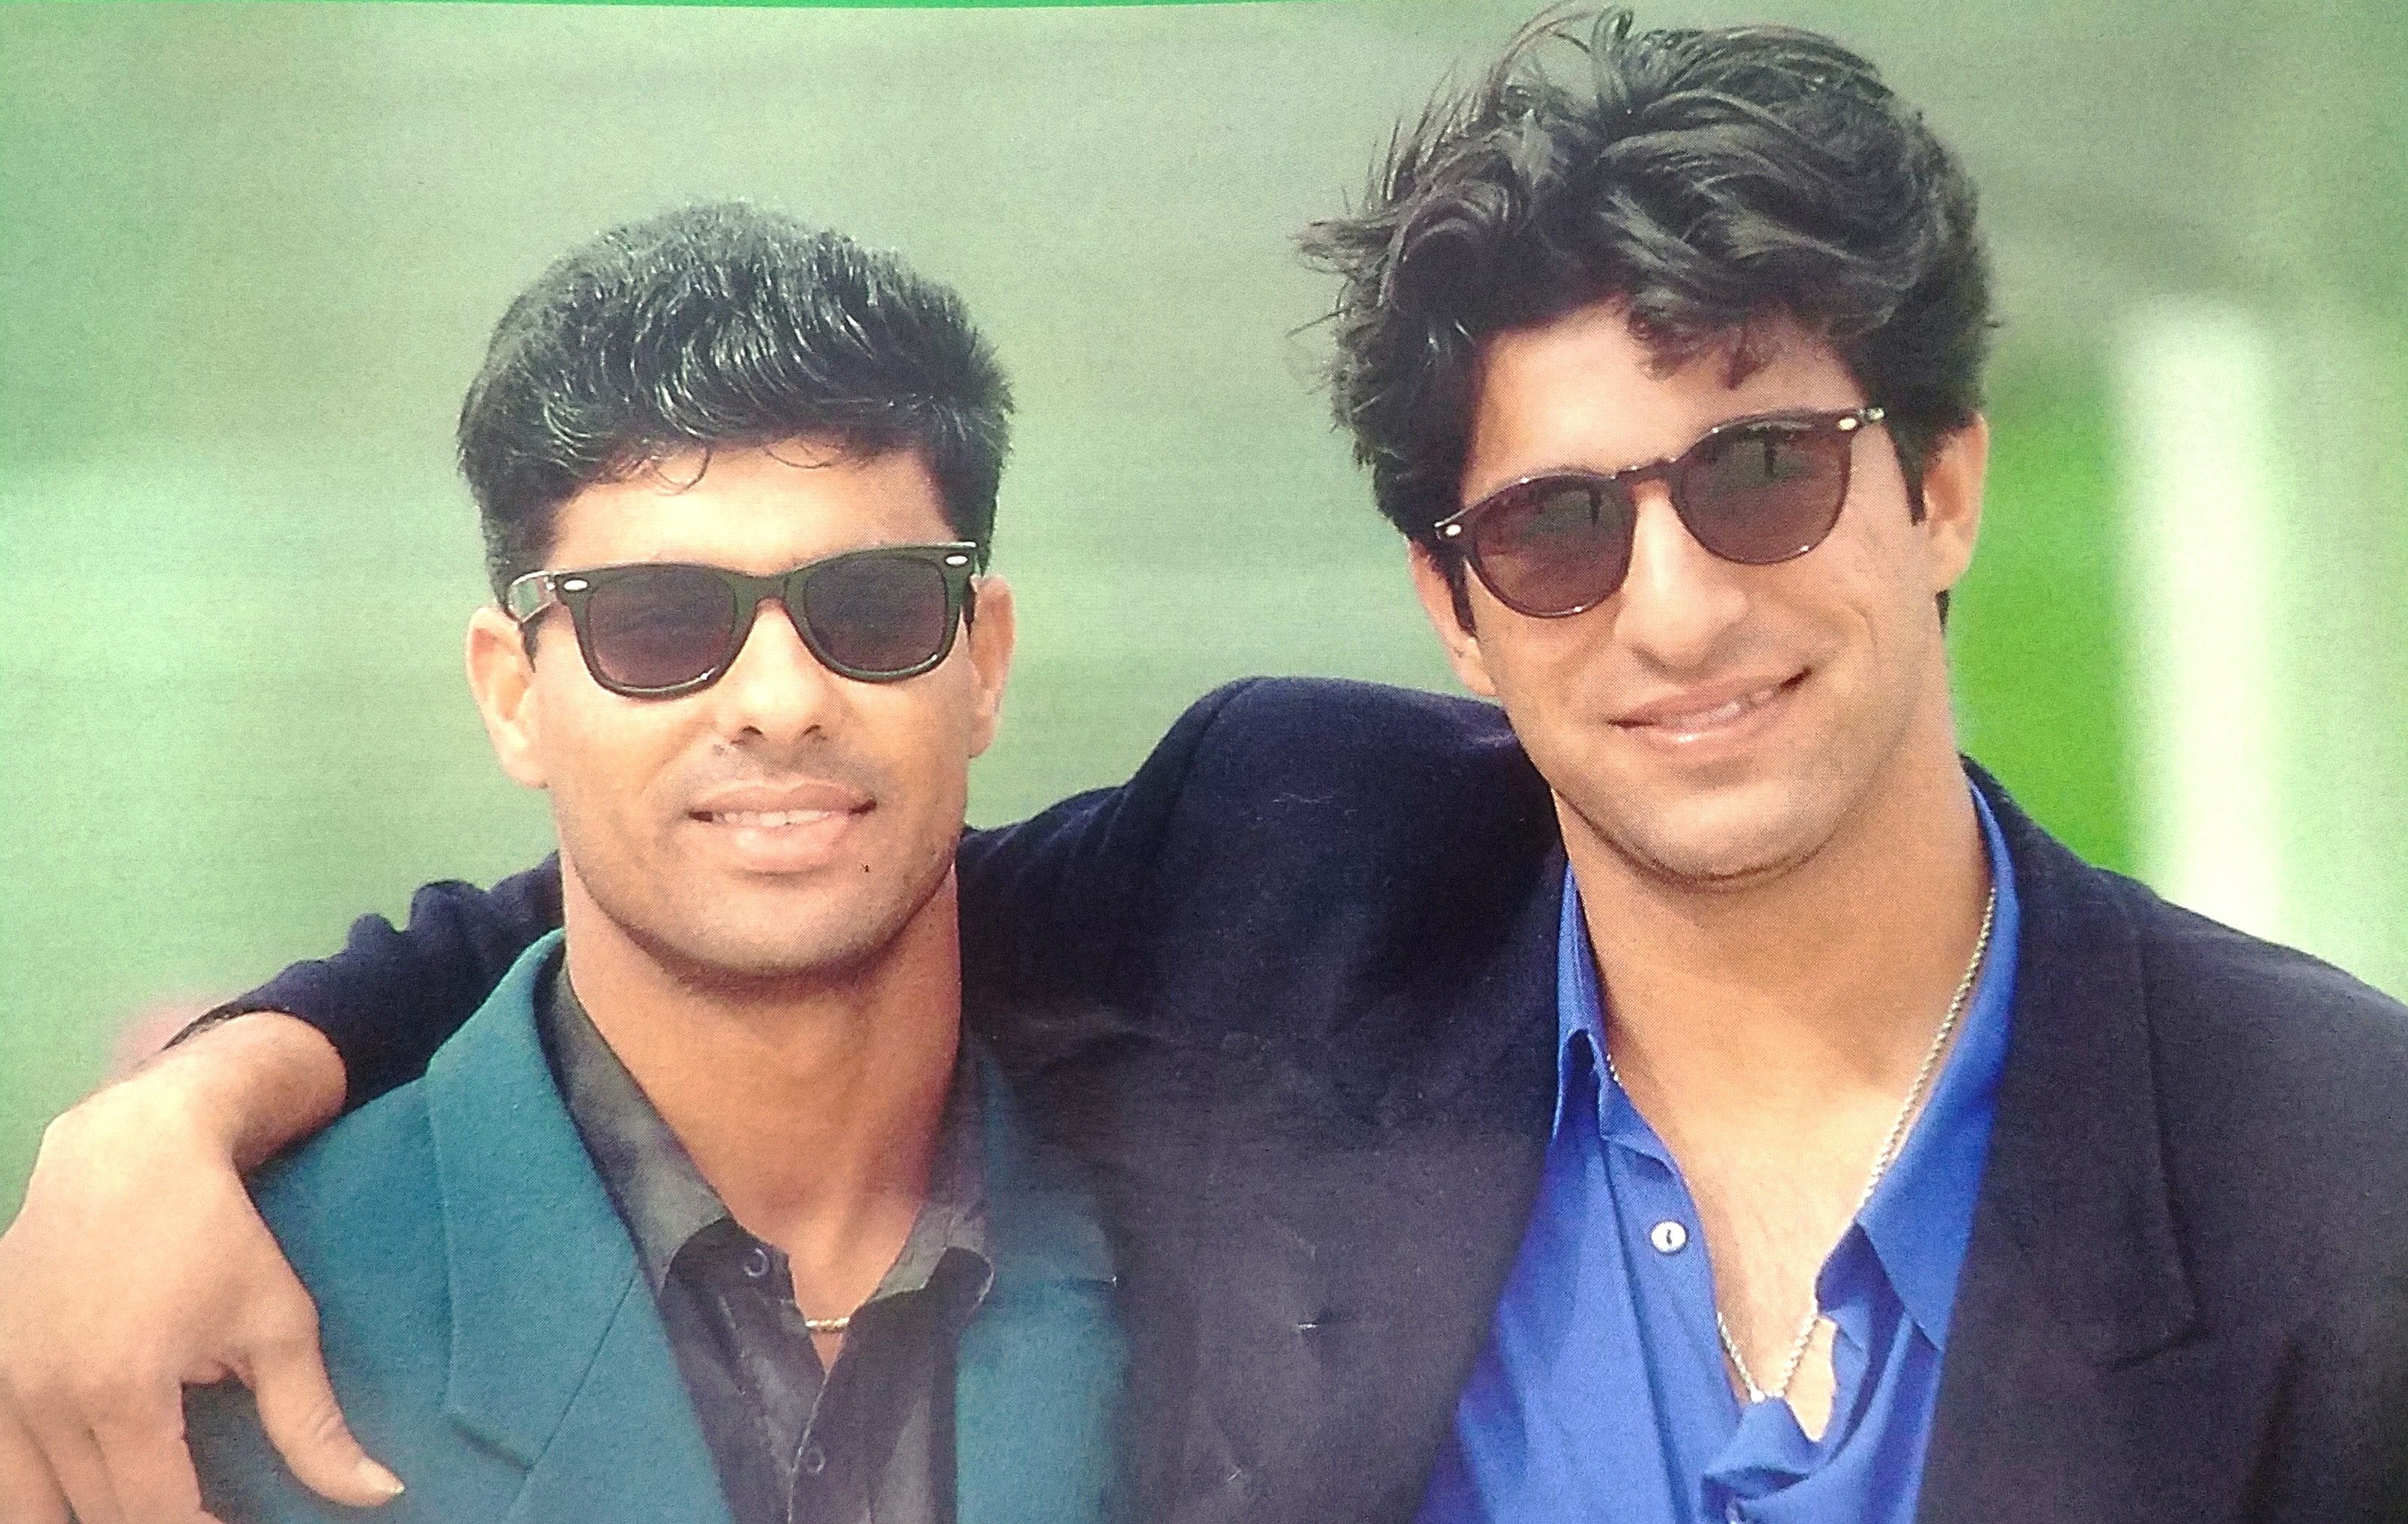 Wasim and Waqar working in tandem will remain one great picture to cherish.